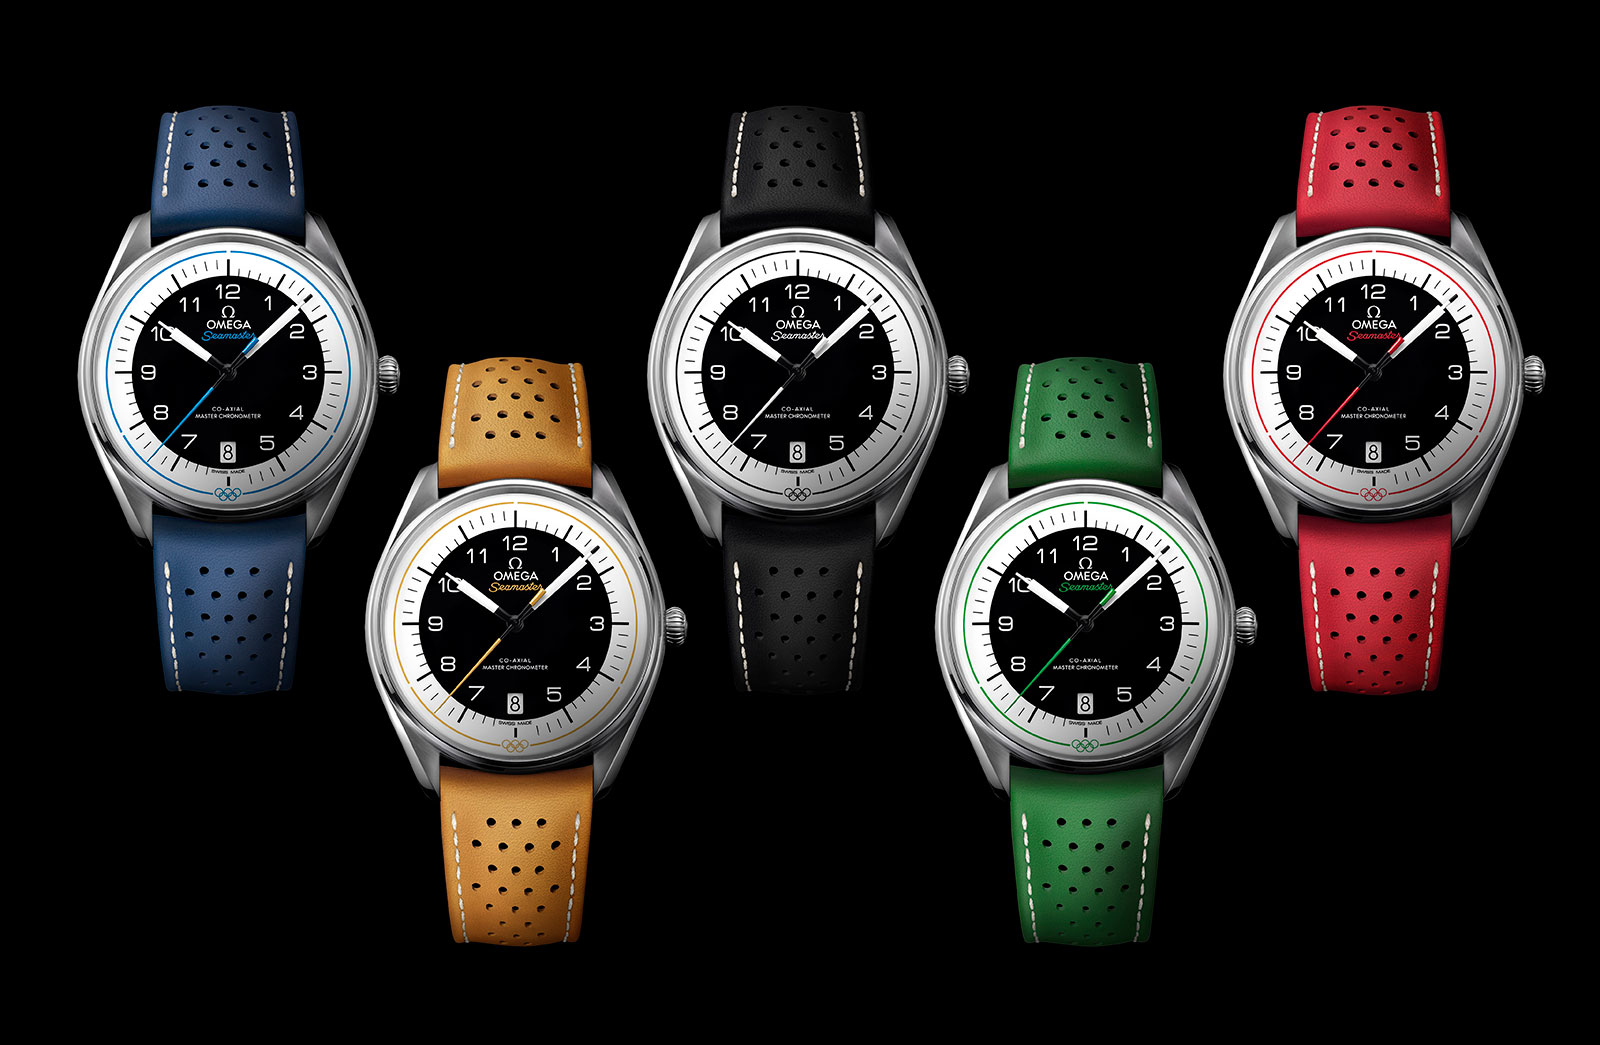 54828cbd03e Omega Introduces the Entry-Level Seamaster Olympic Games Collection ...